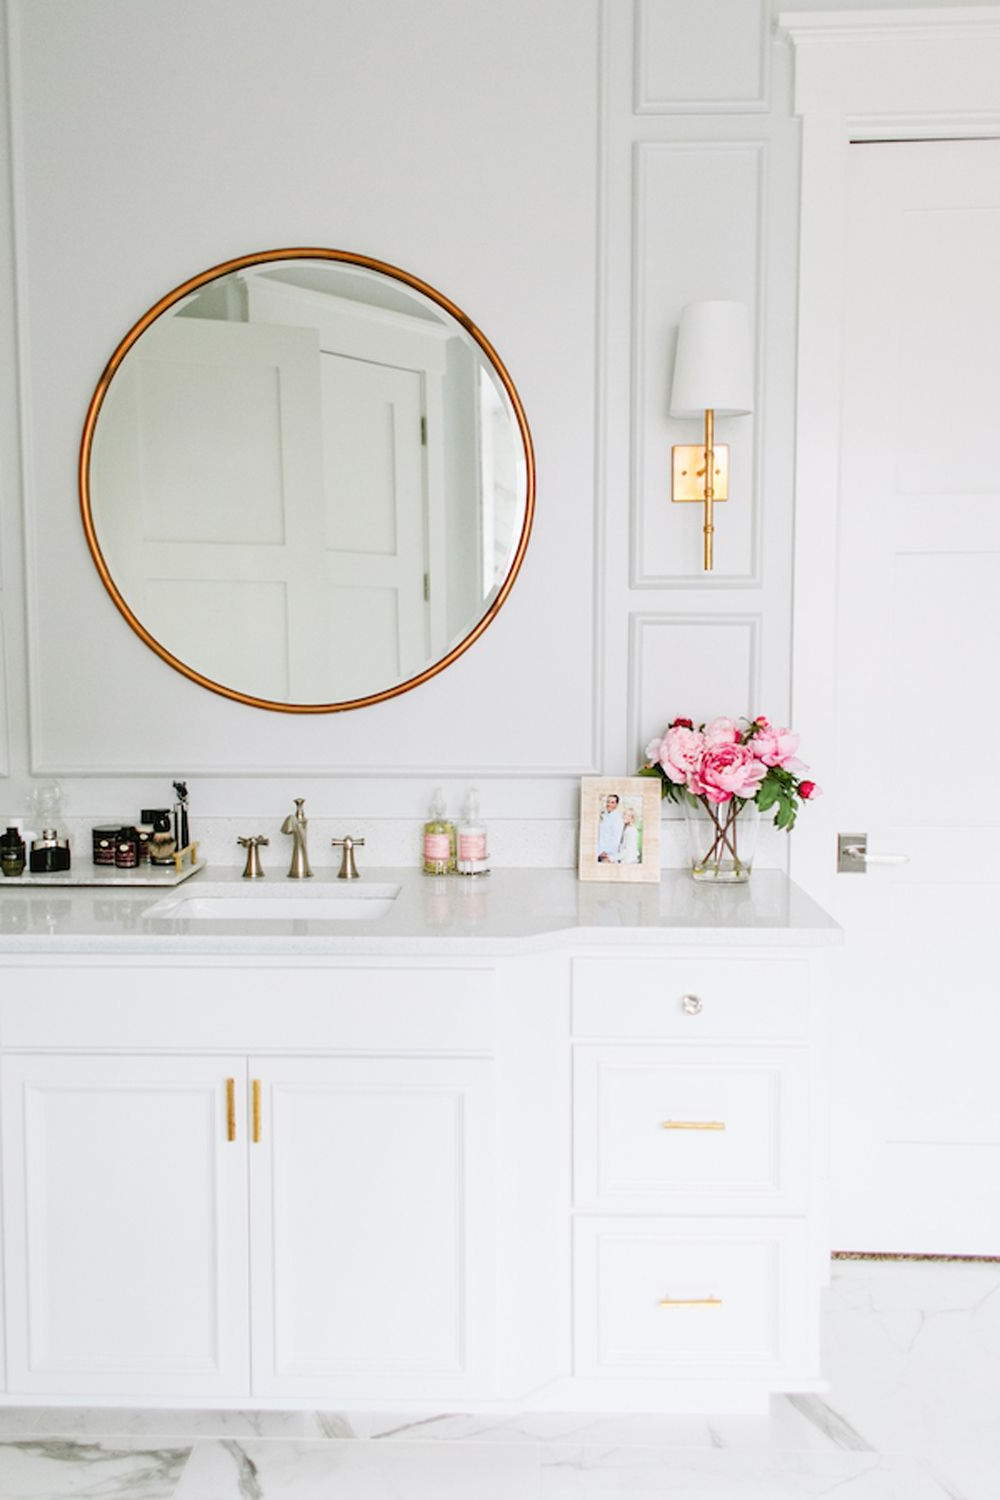 Famous Stunning White Bathroom Vanity With Gold Accents And Gold Circular With Regard To Owens Accent Mirrors (View 4 of 20)